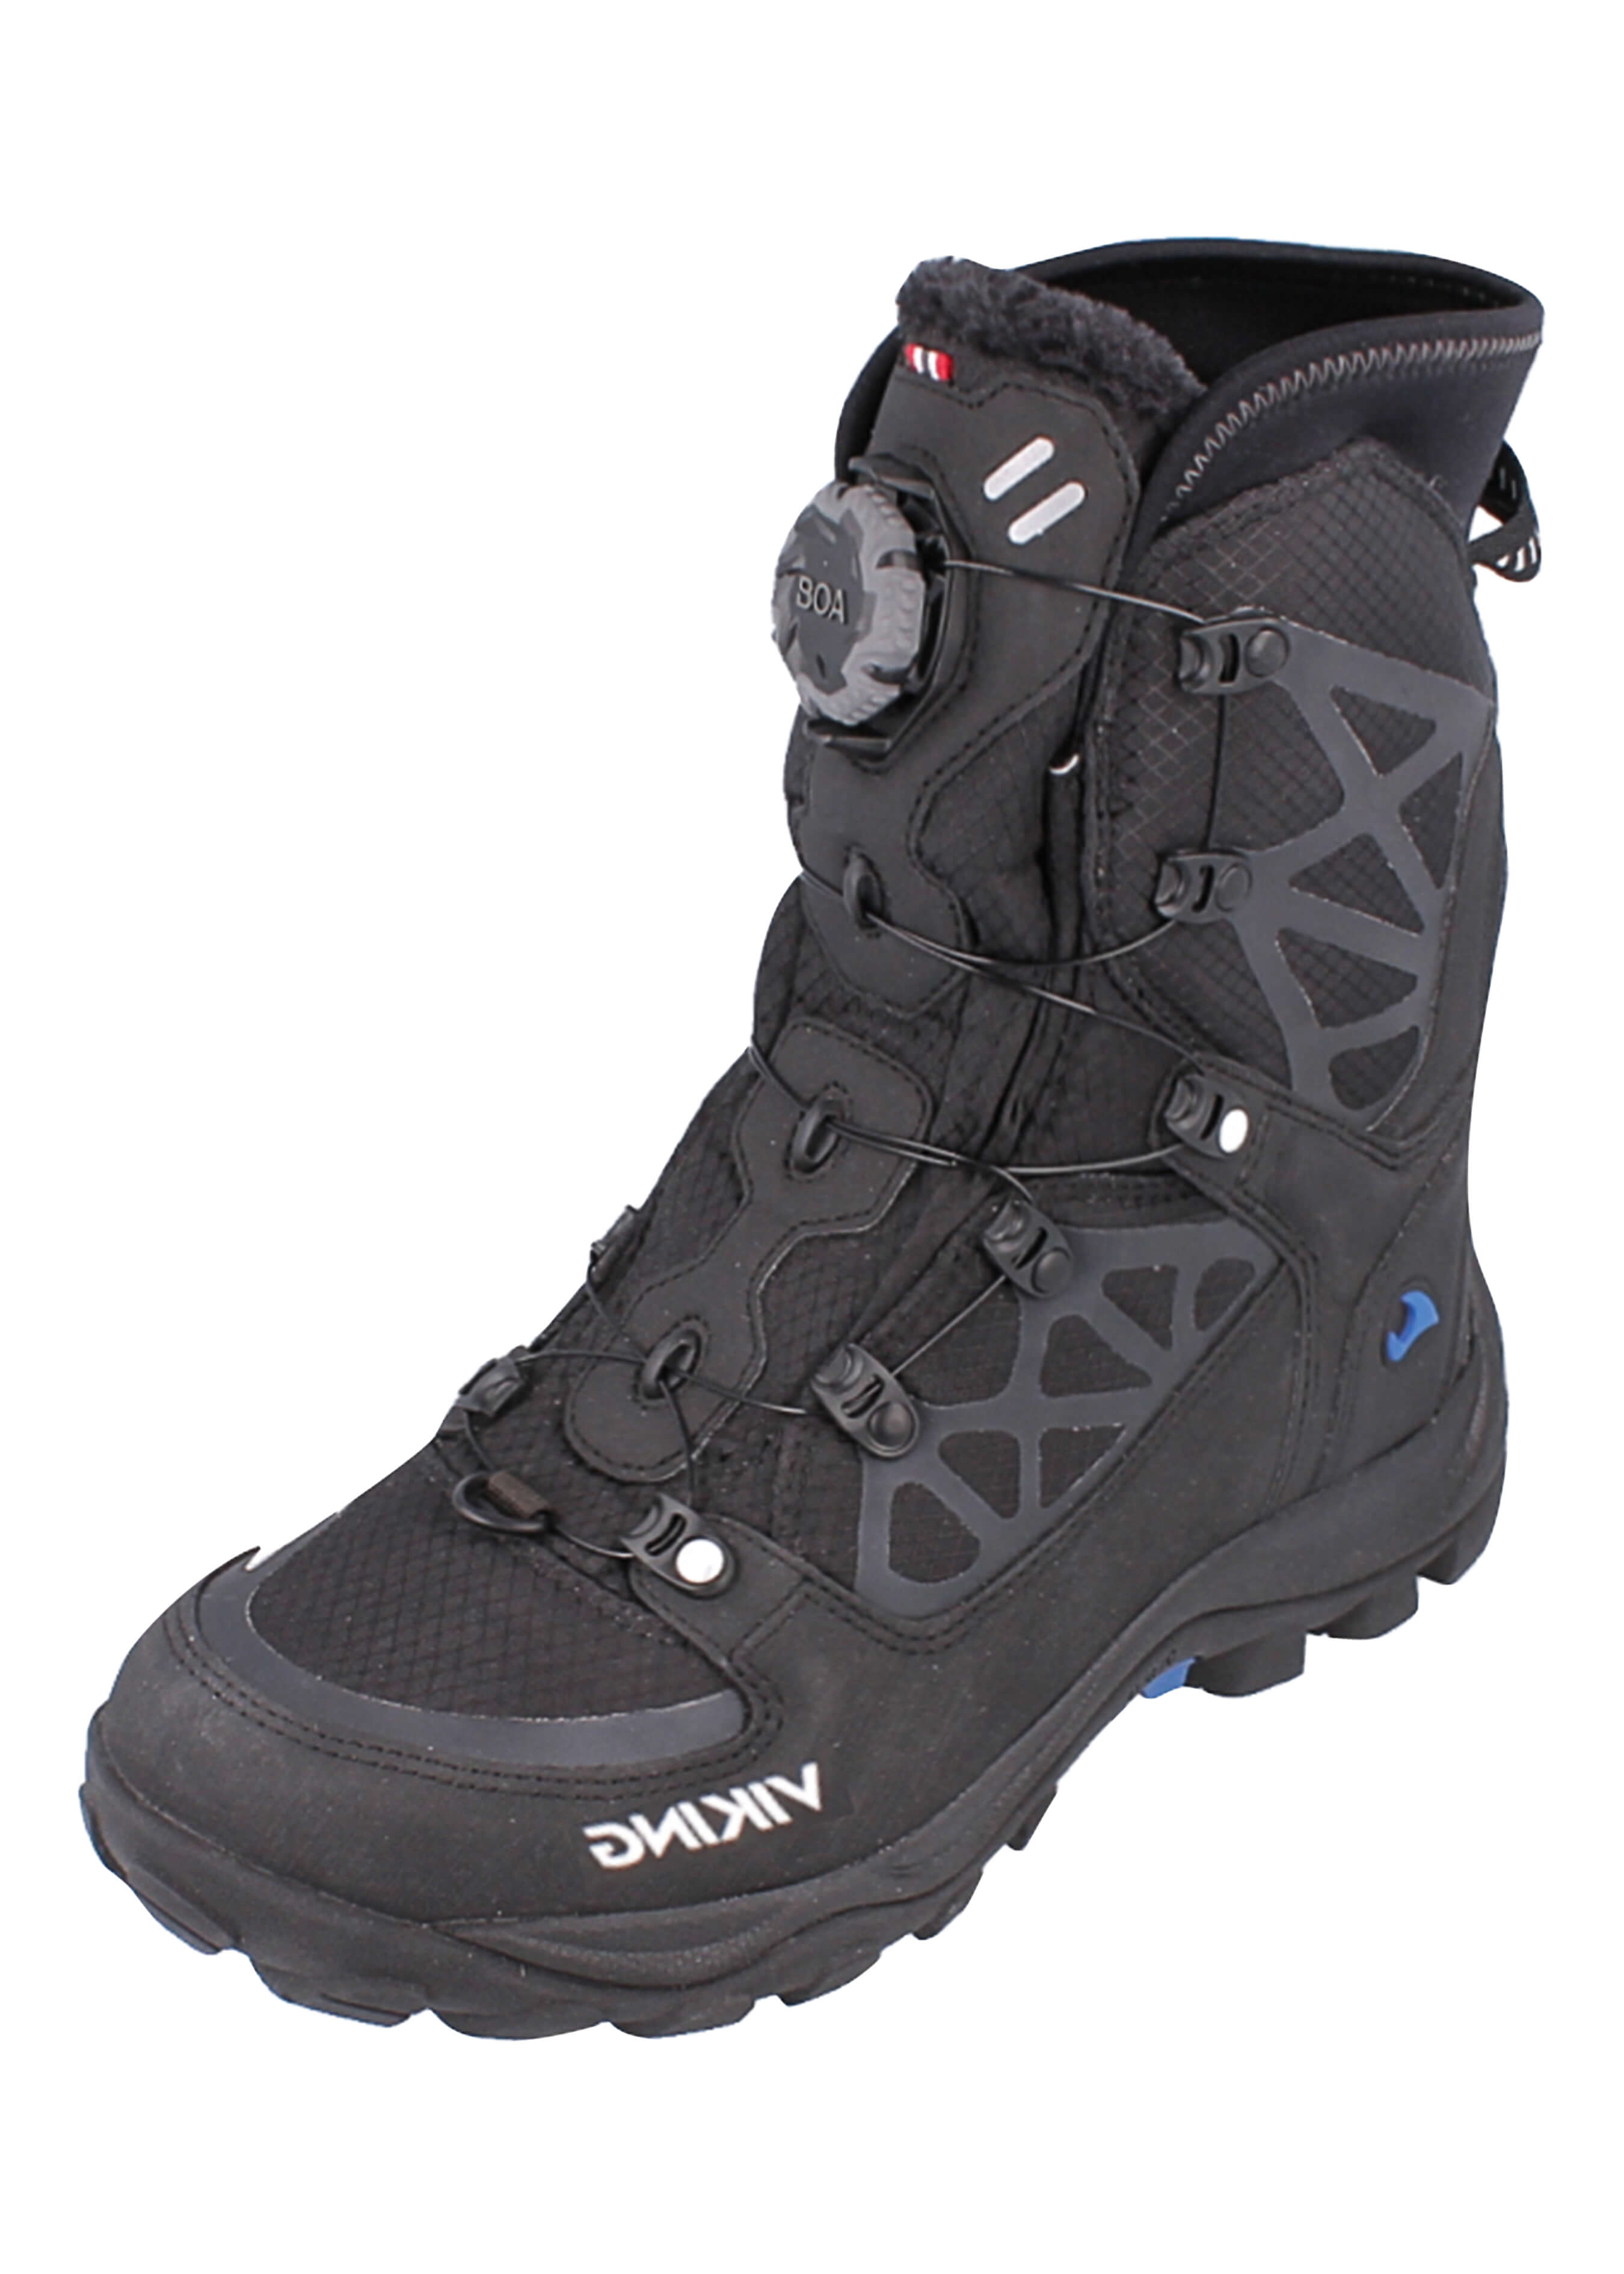 Viking Funktions-Winterboot Constrictor BOA 42681036 1